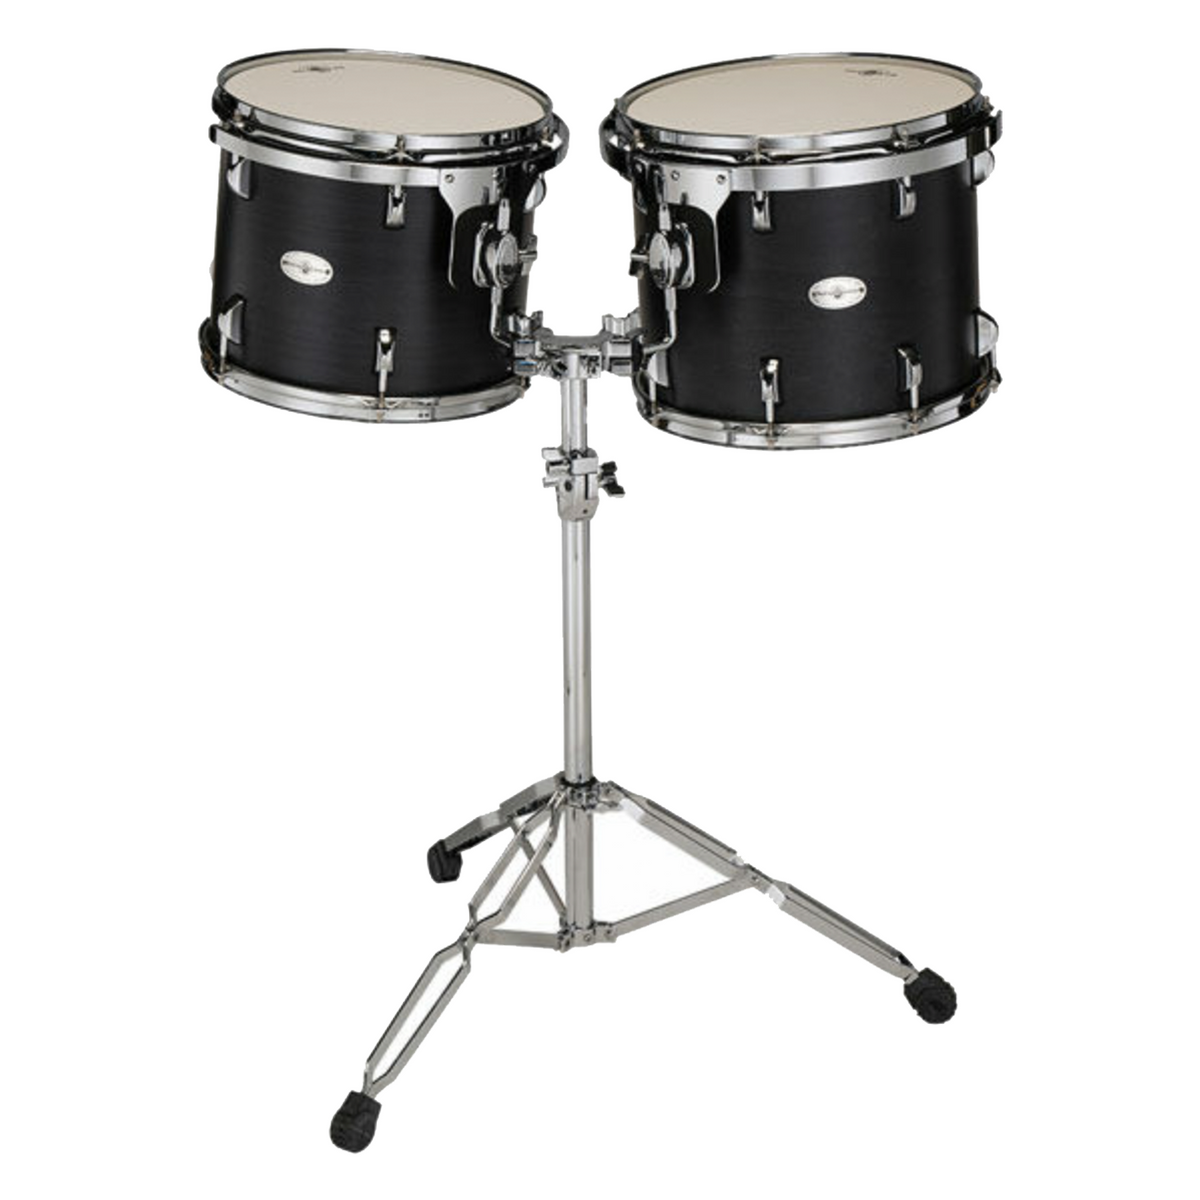 "Black Swamp - 6"" and 8"" Concert Toms Set w/ Stand-Percussion Accessories-Black Swamp-Music Elements"